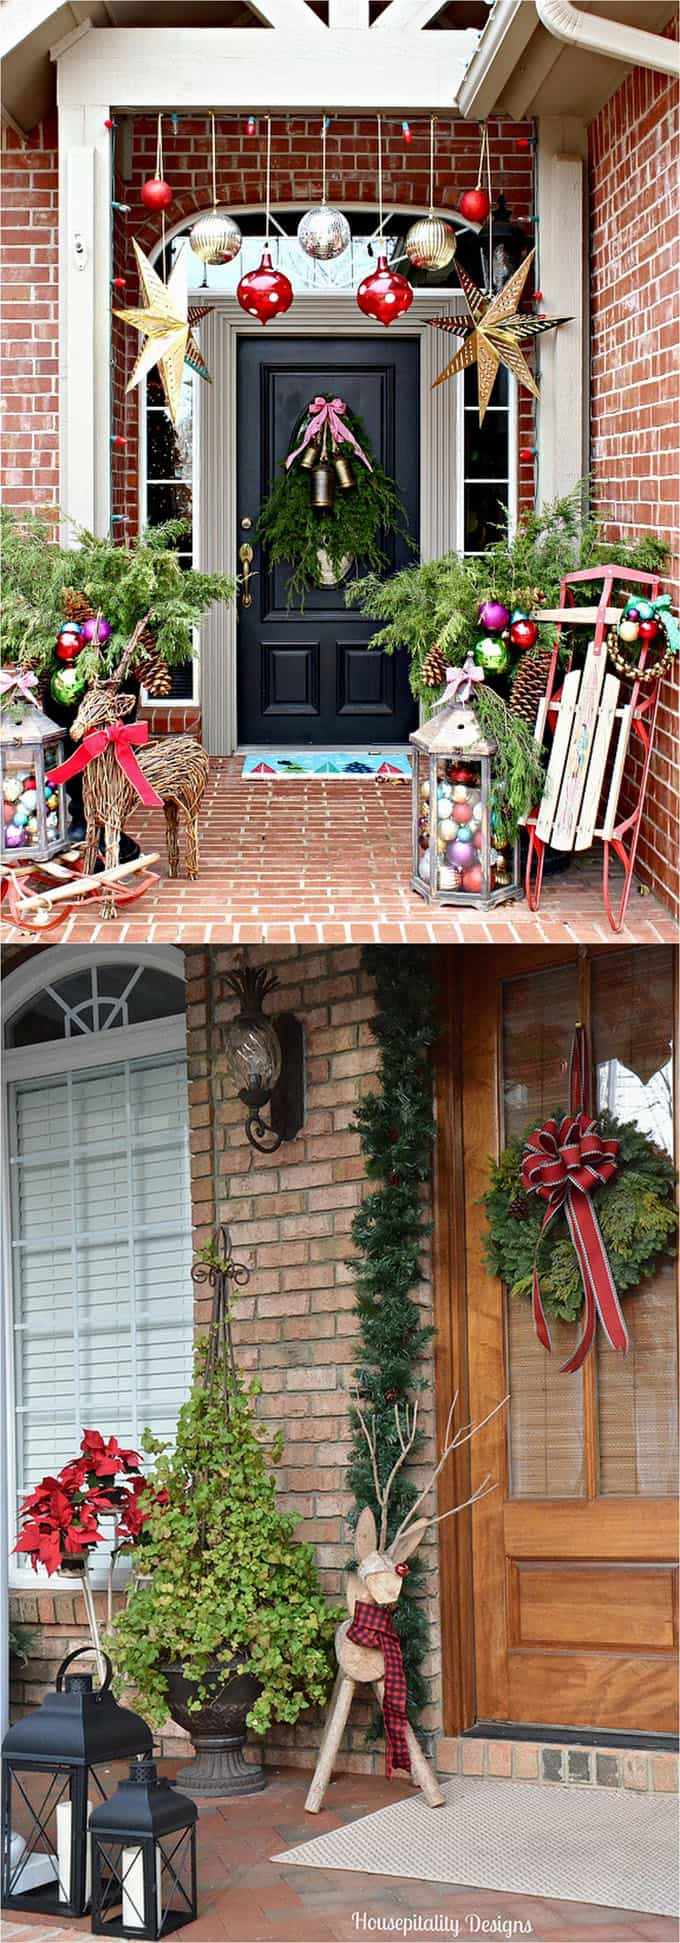 Gorgeous Outdoor Christmas Decorations 32 Best Ideas Tutorials intended for 16 Smart Designs of How to Makeover Ideas To Decorate Backyard